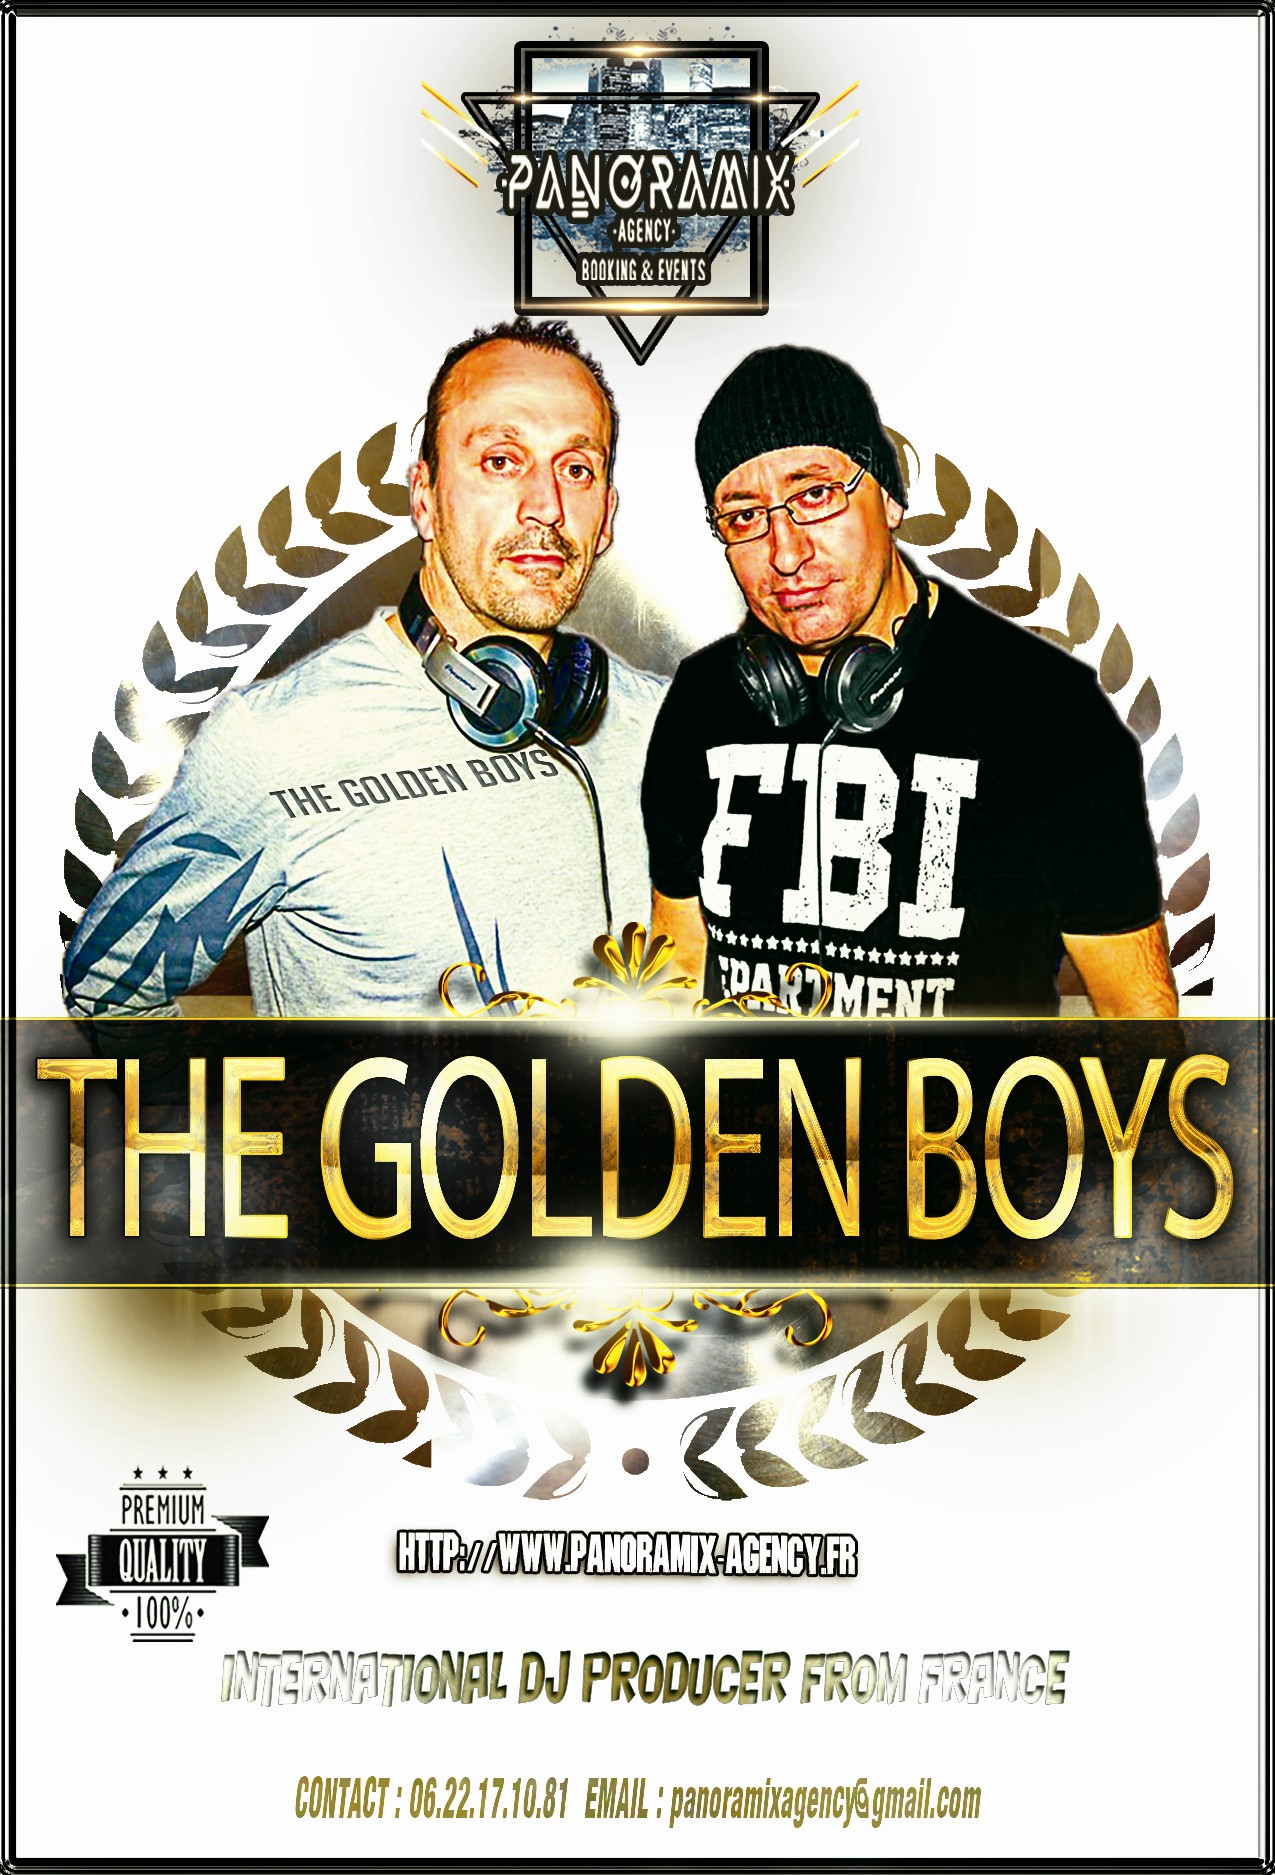 http://panoramix-radio-station.com/wp-content/uploads/2017/07/GOLDEN-BOYS-AFFICHE-PANORAMIX-AGENCY.jpg